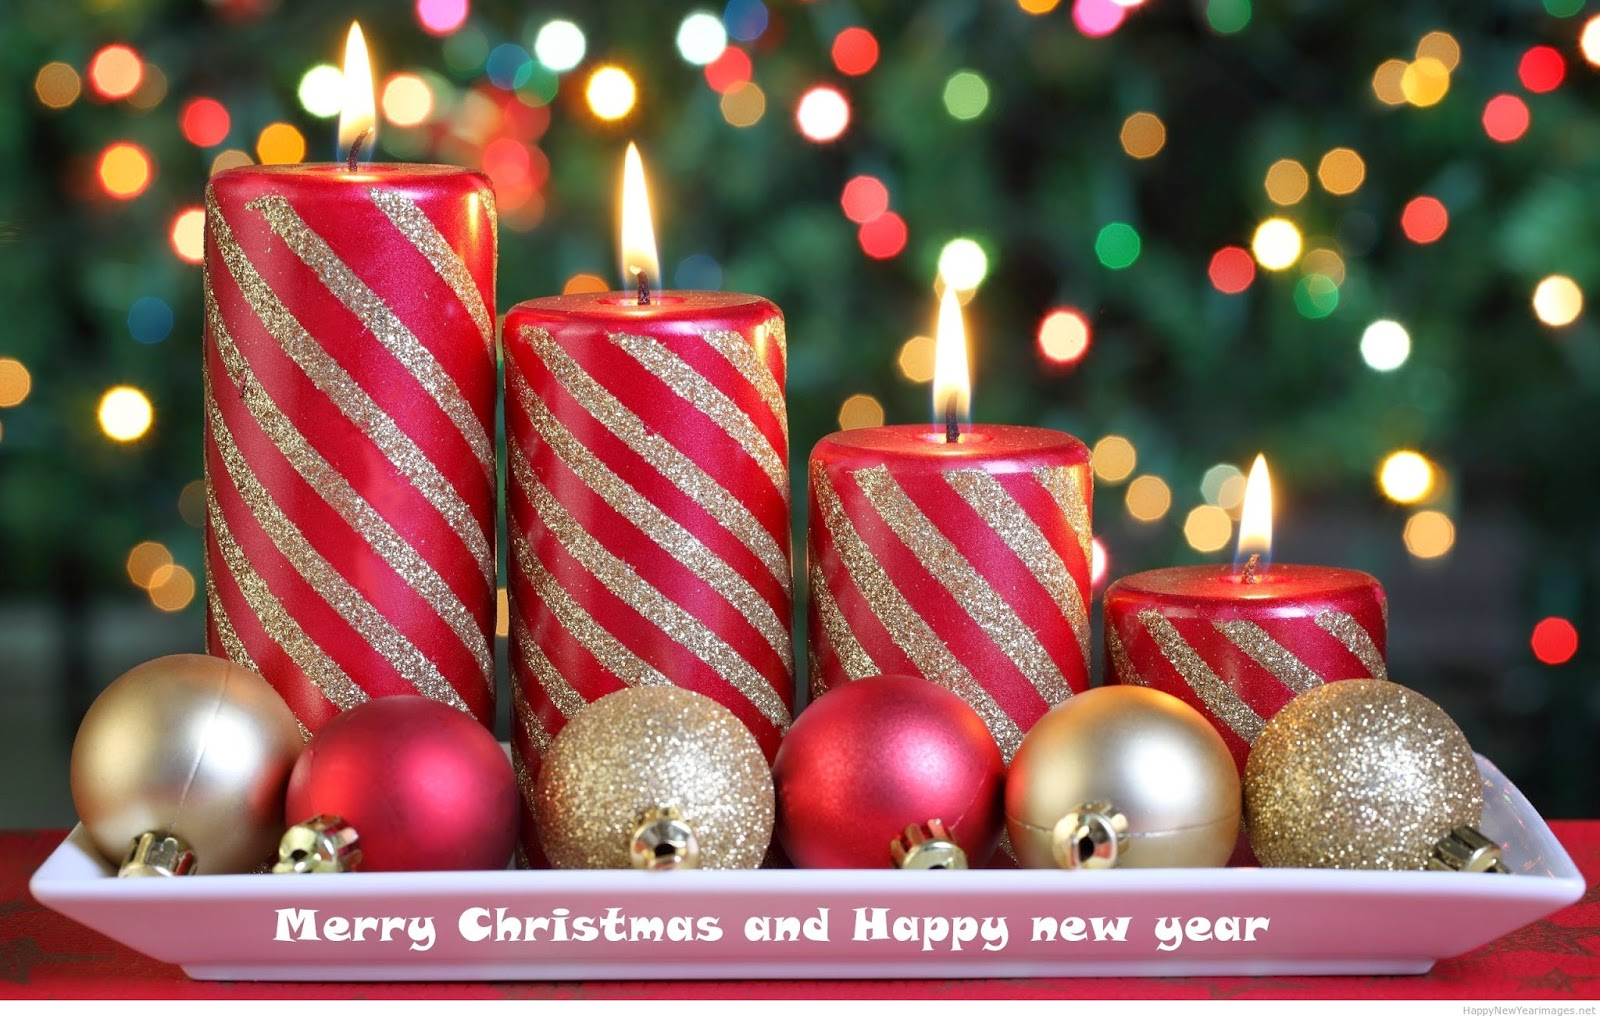 merry christmas and happy new year 2015 greetings wallpapers